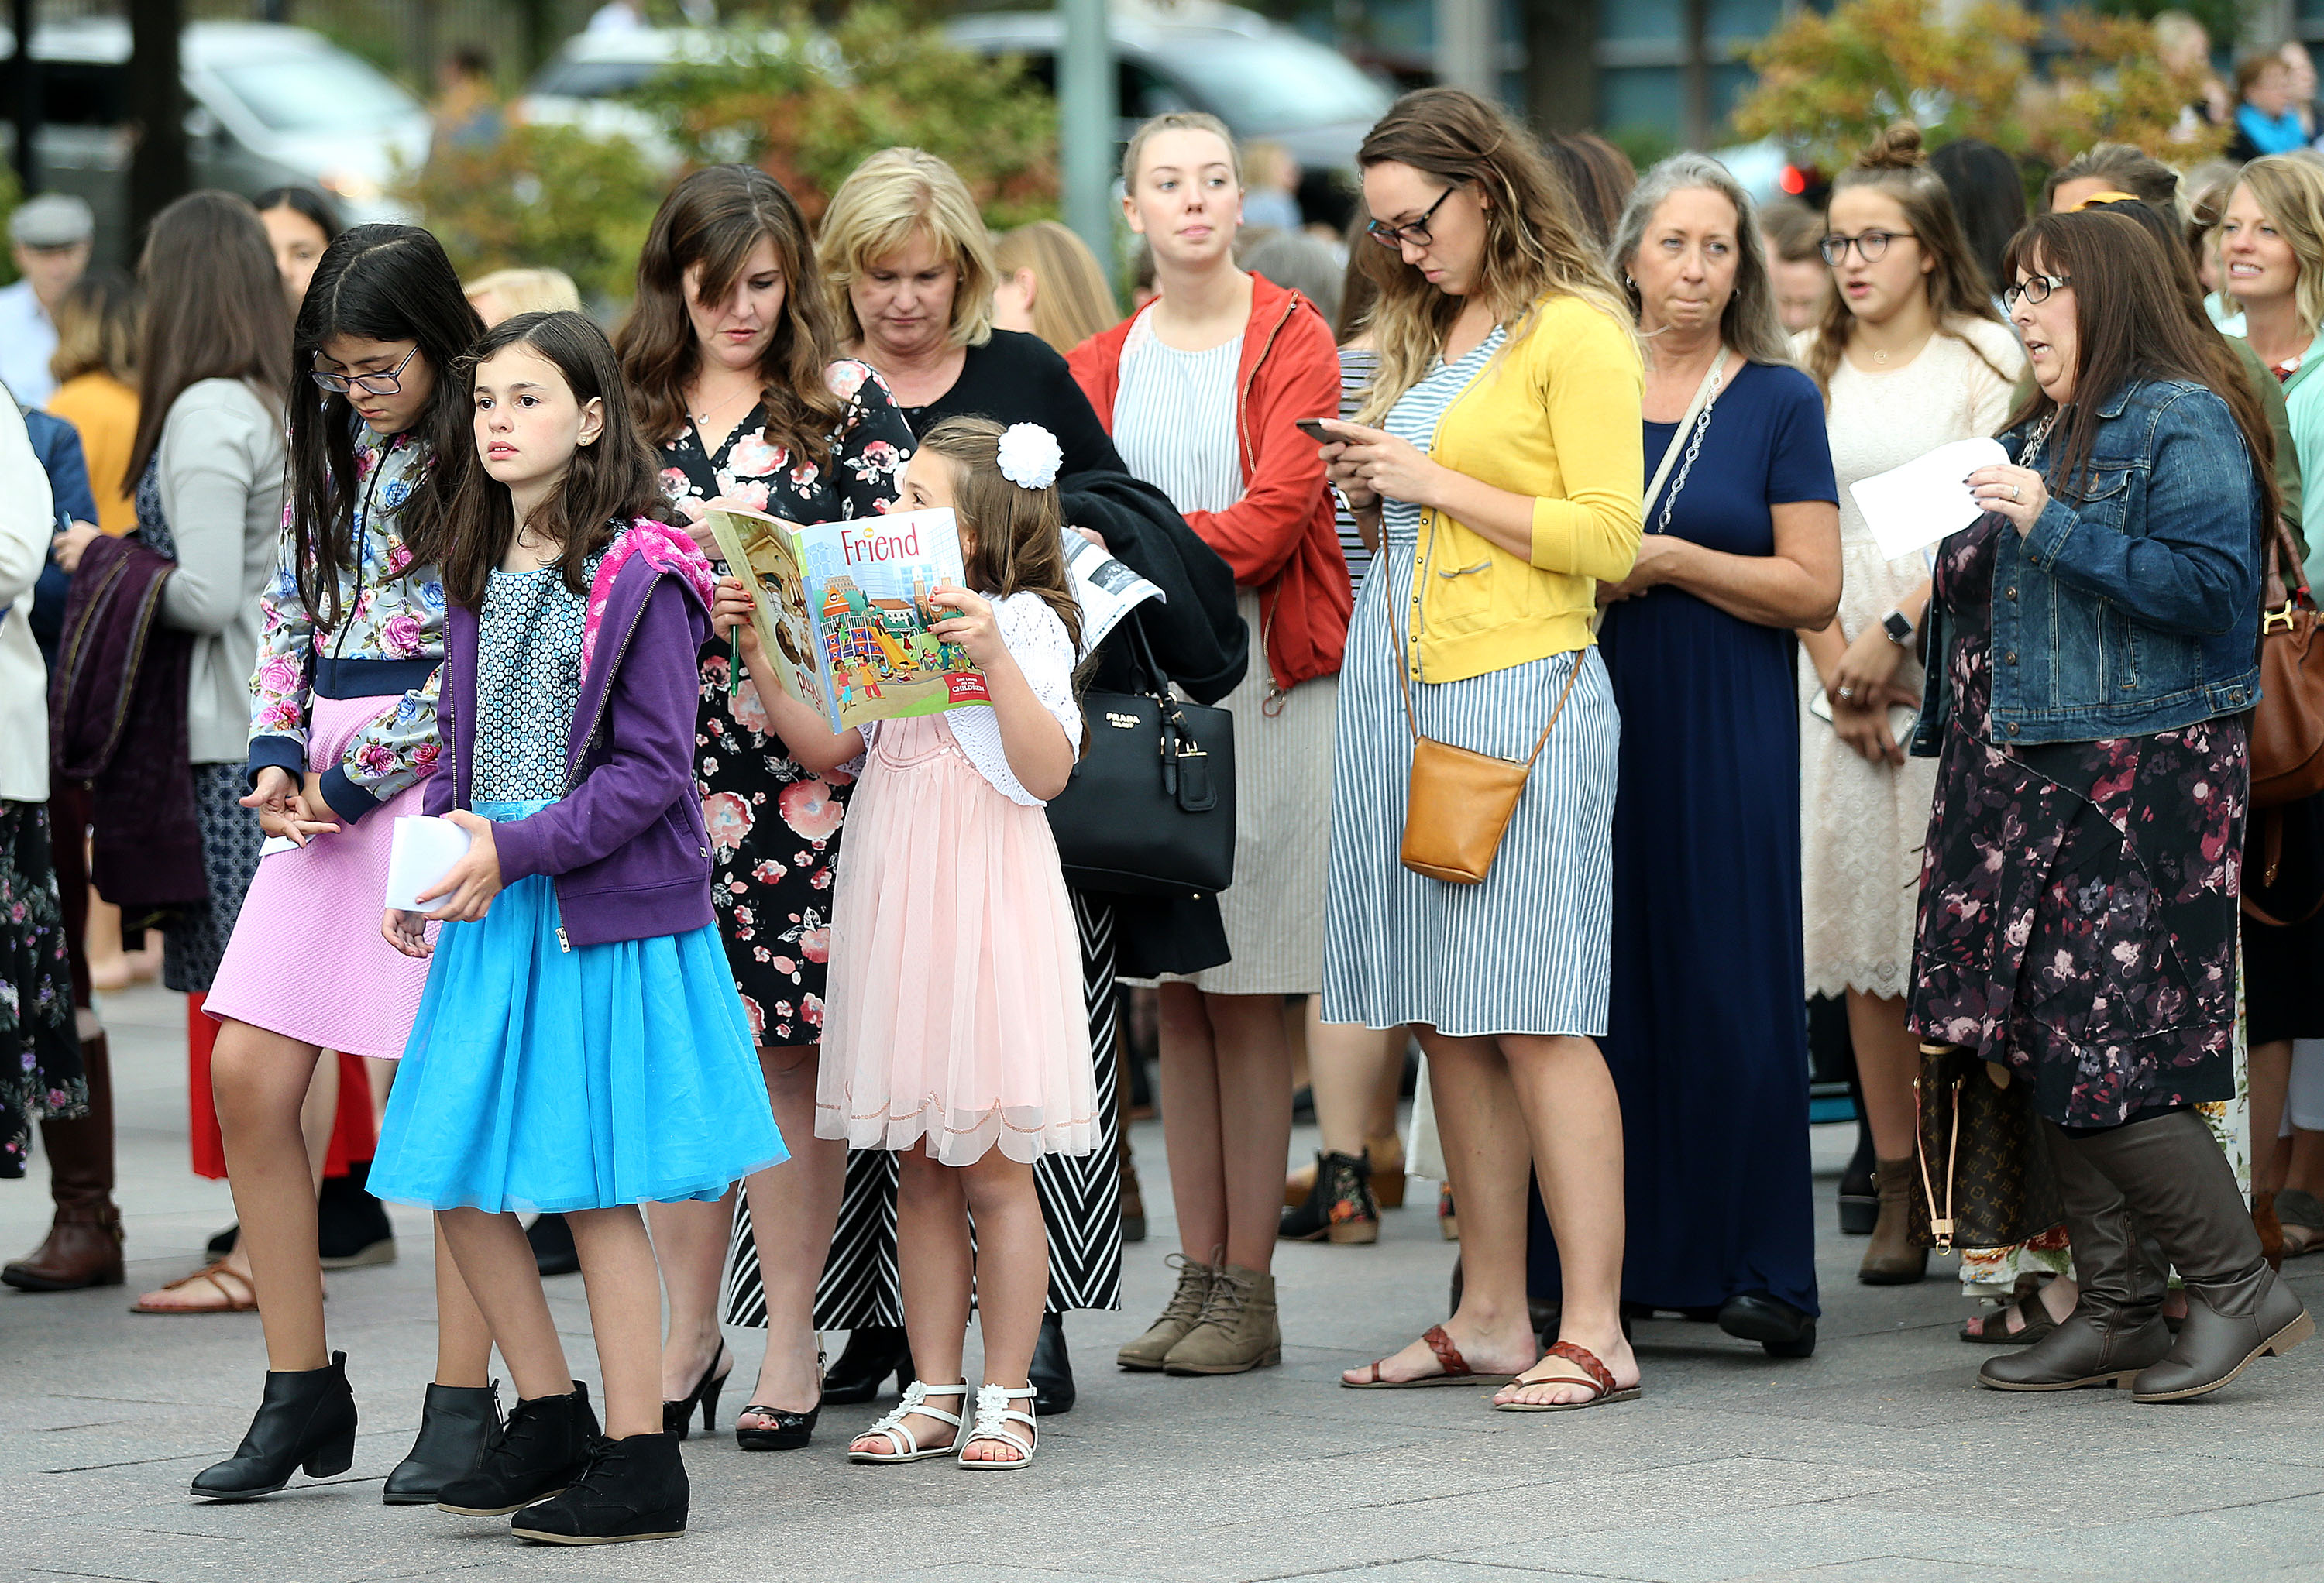 Women and children line up to enter the general women's session of the 188th Semiannual General Conference of The Church of Jesus Christ of Latter-day Saints held in the Conference Center in downtown Salt Lake City on Saturday, Oct. 6, 2018.